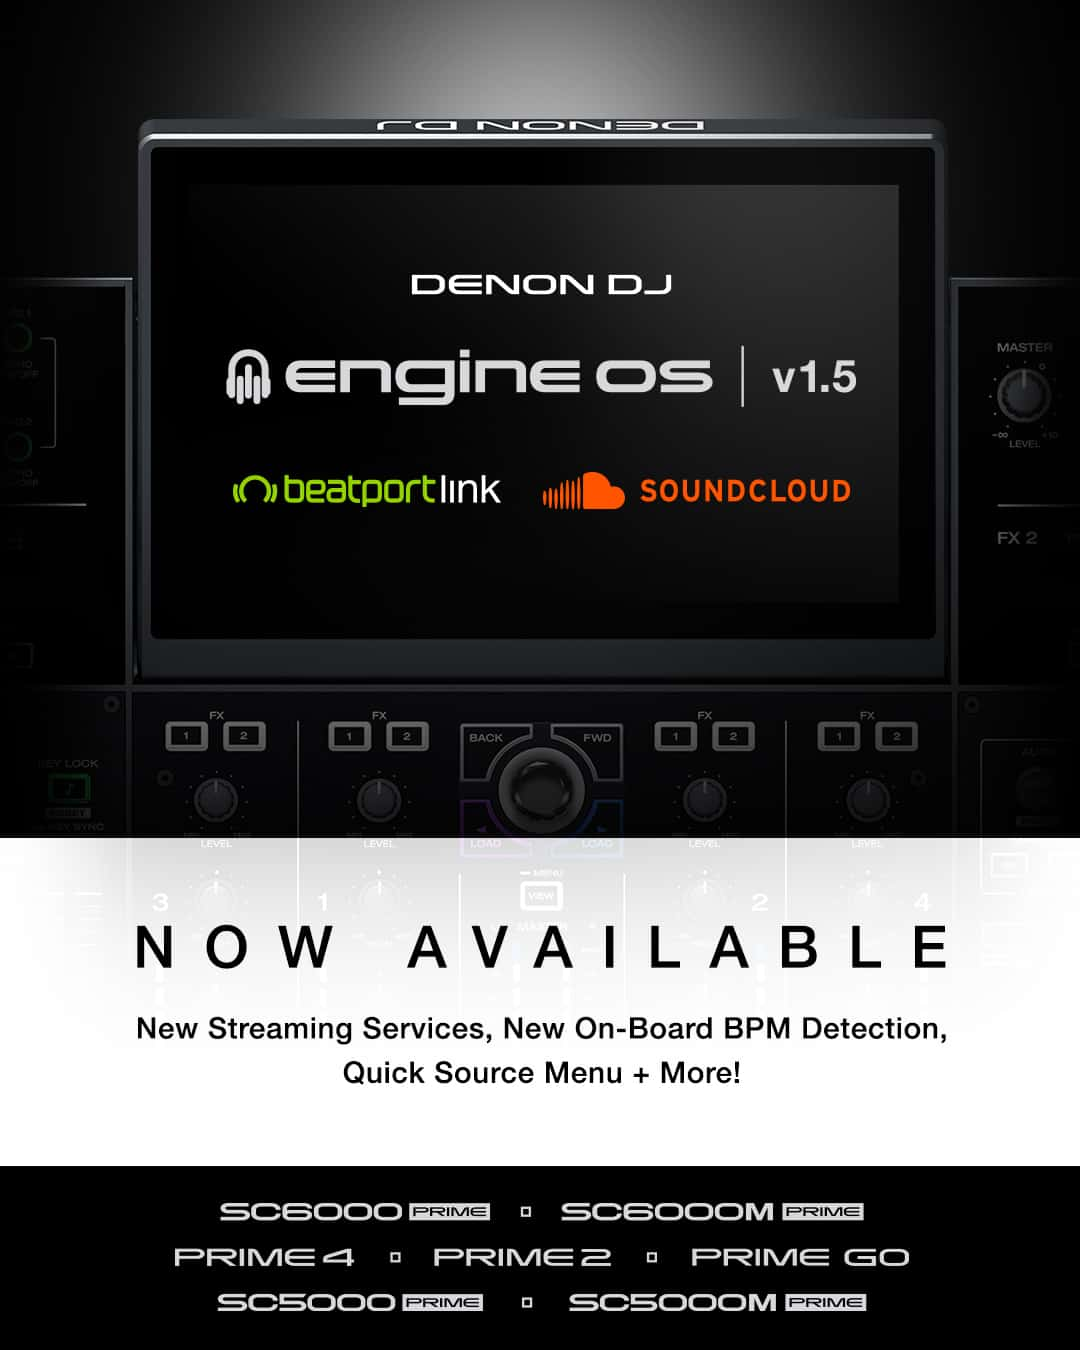 Engine® Dj Brings Soundcloud & Beatport Link To All Denon DJ ...